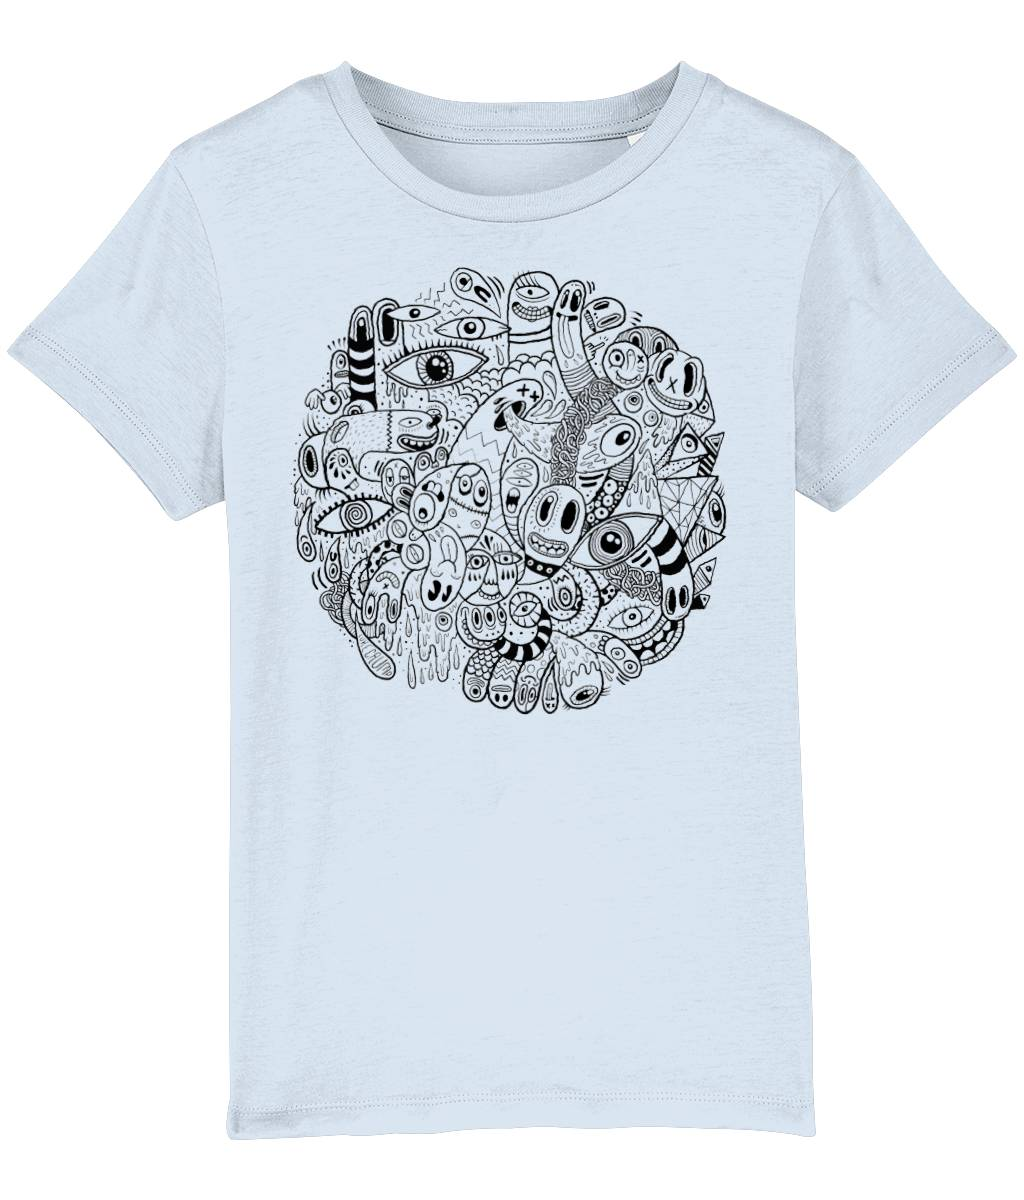 'World Of Weird' Kids T-shirt